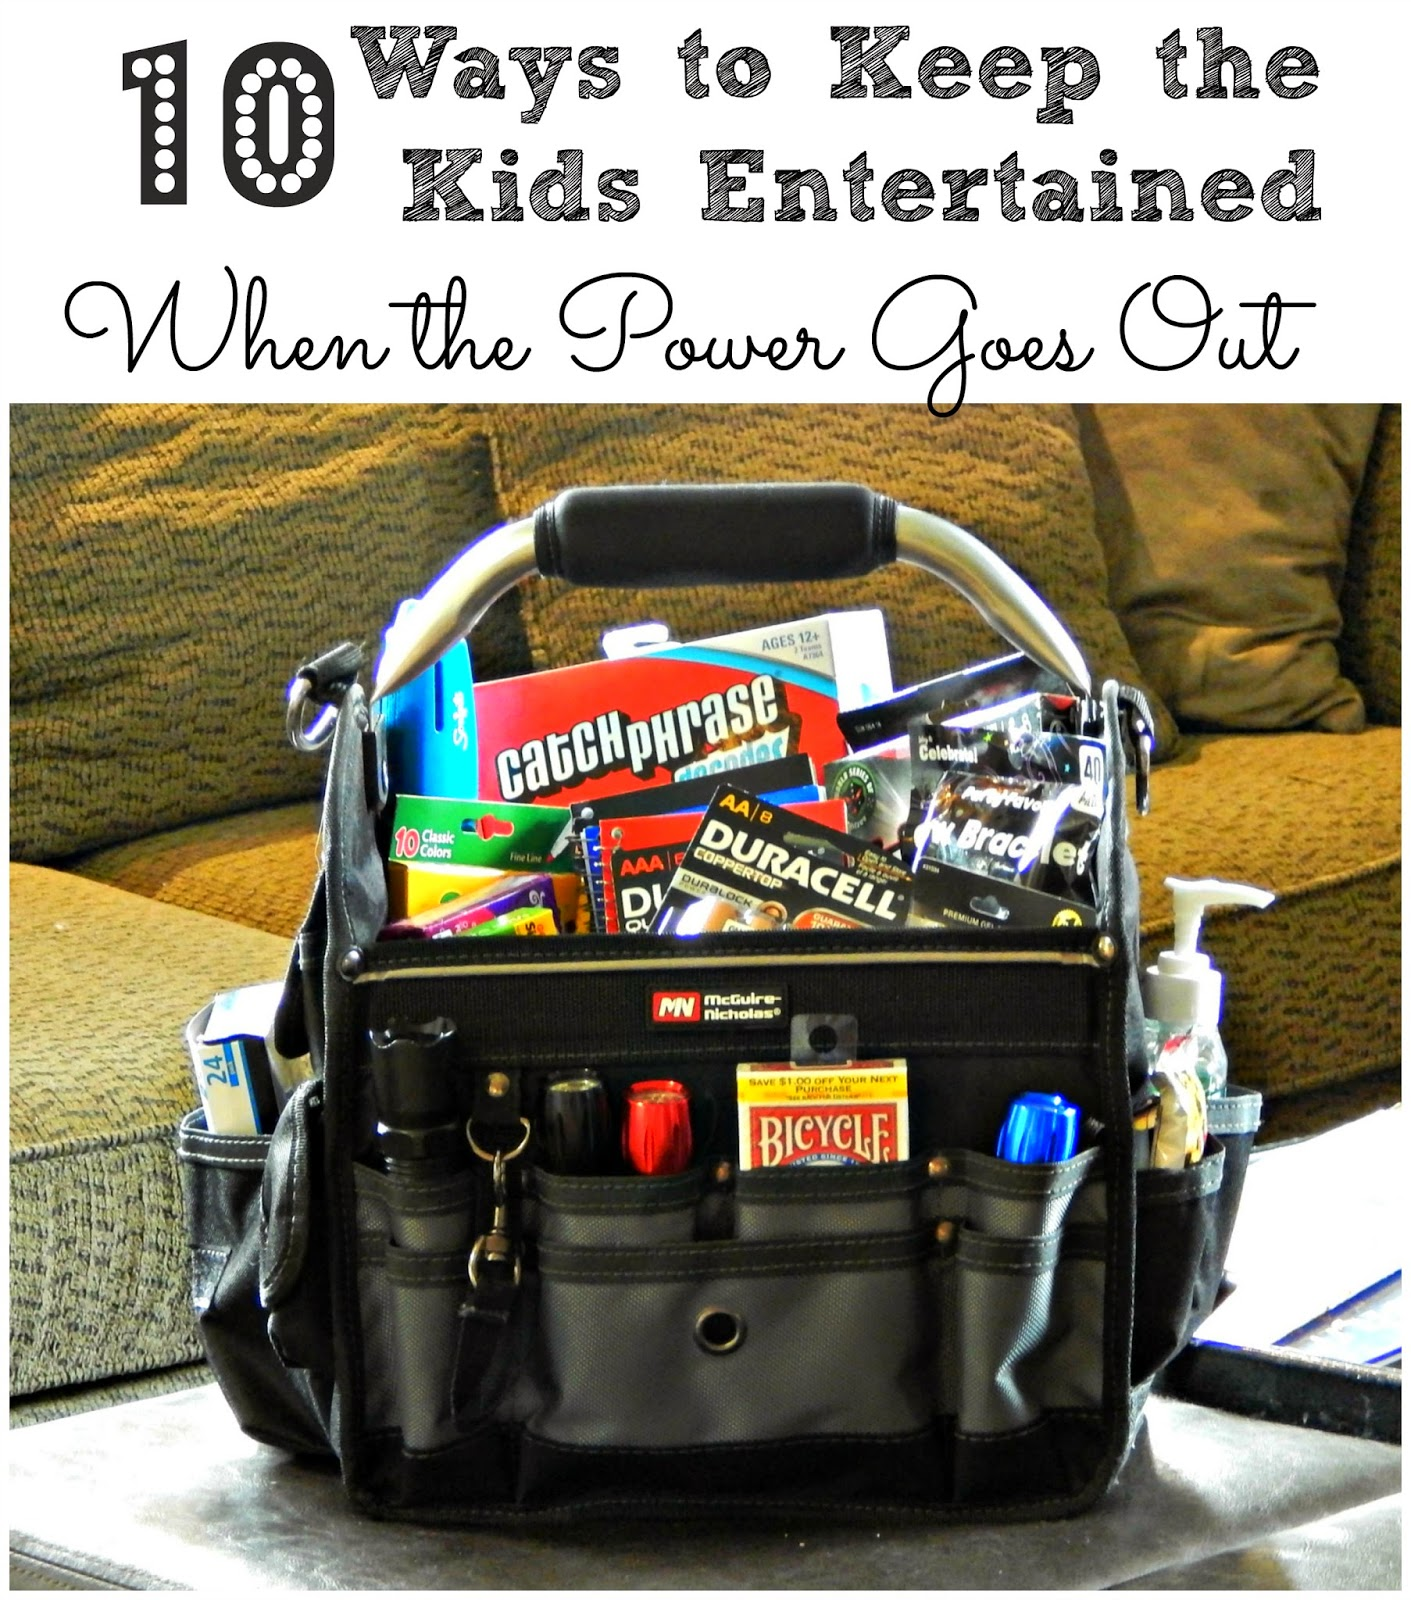 10 Ways to Keep the Kids Entertained When the Power Goes Out #PrepWithPower #shop #cbias